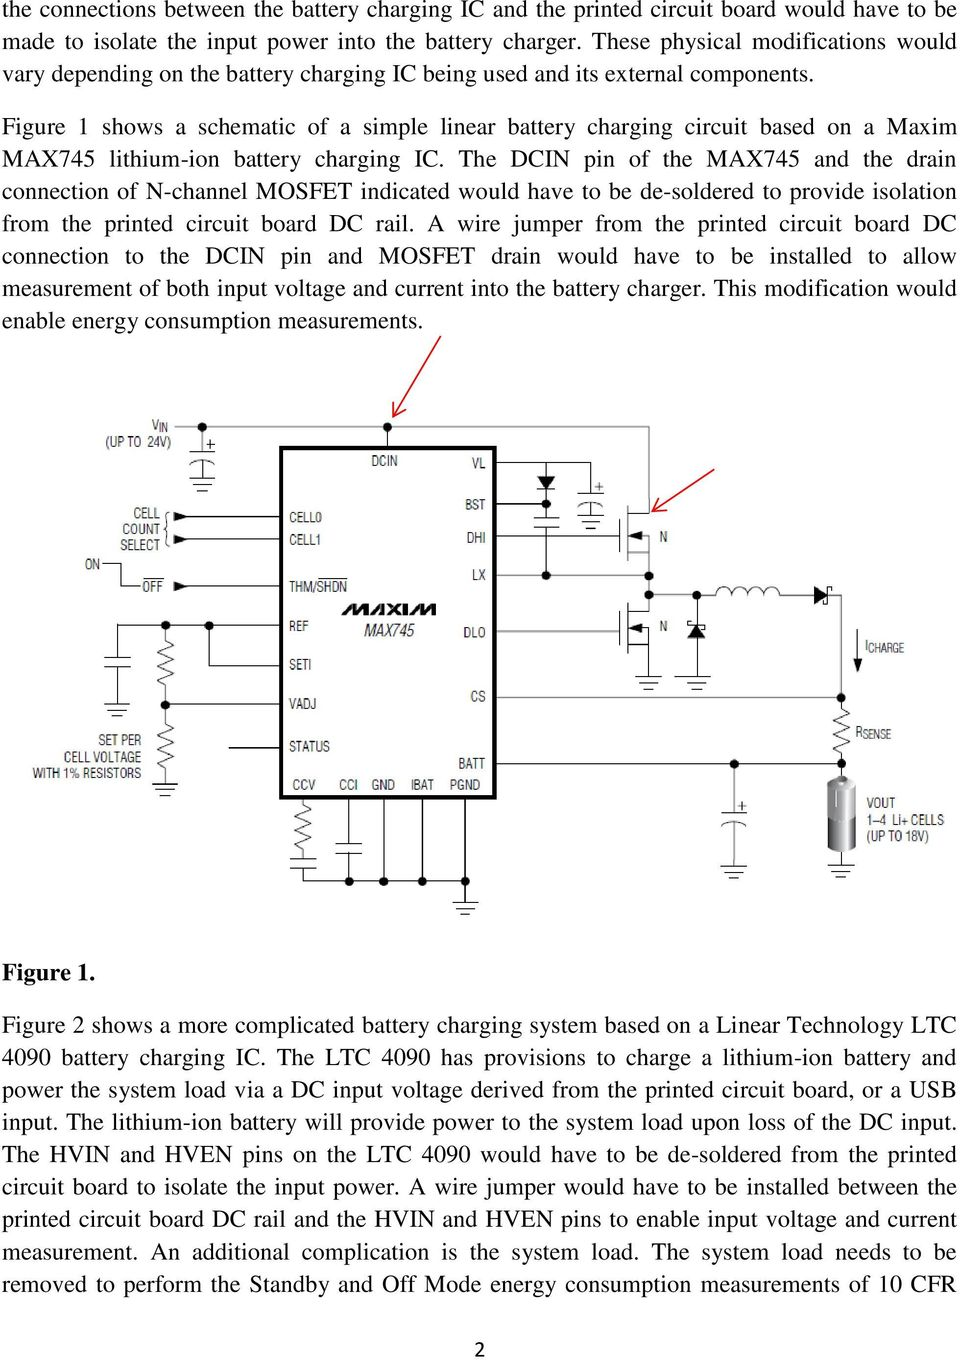 Isolation Of Battery Chargers Integrated Into Printed Circuit Boards Simple Pwm Controlled Dc To Cell Phone Charger Science Figure 1 Shows A Schematic Linear Charging Based On Maxim